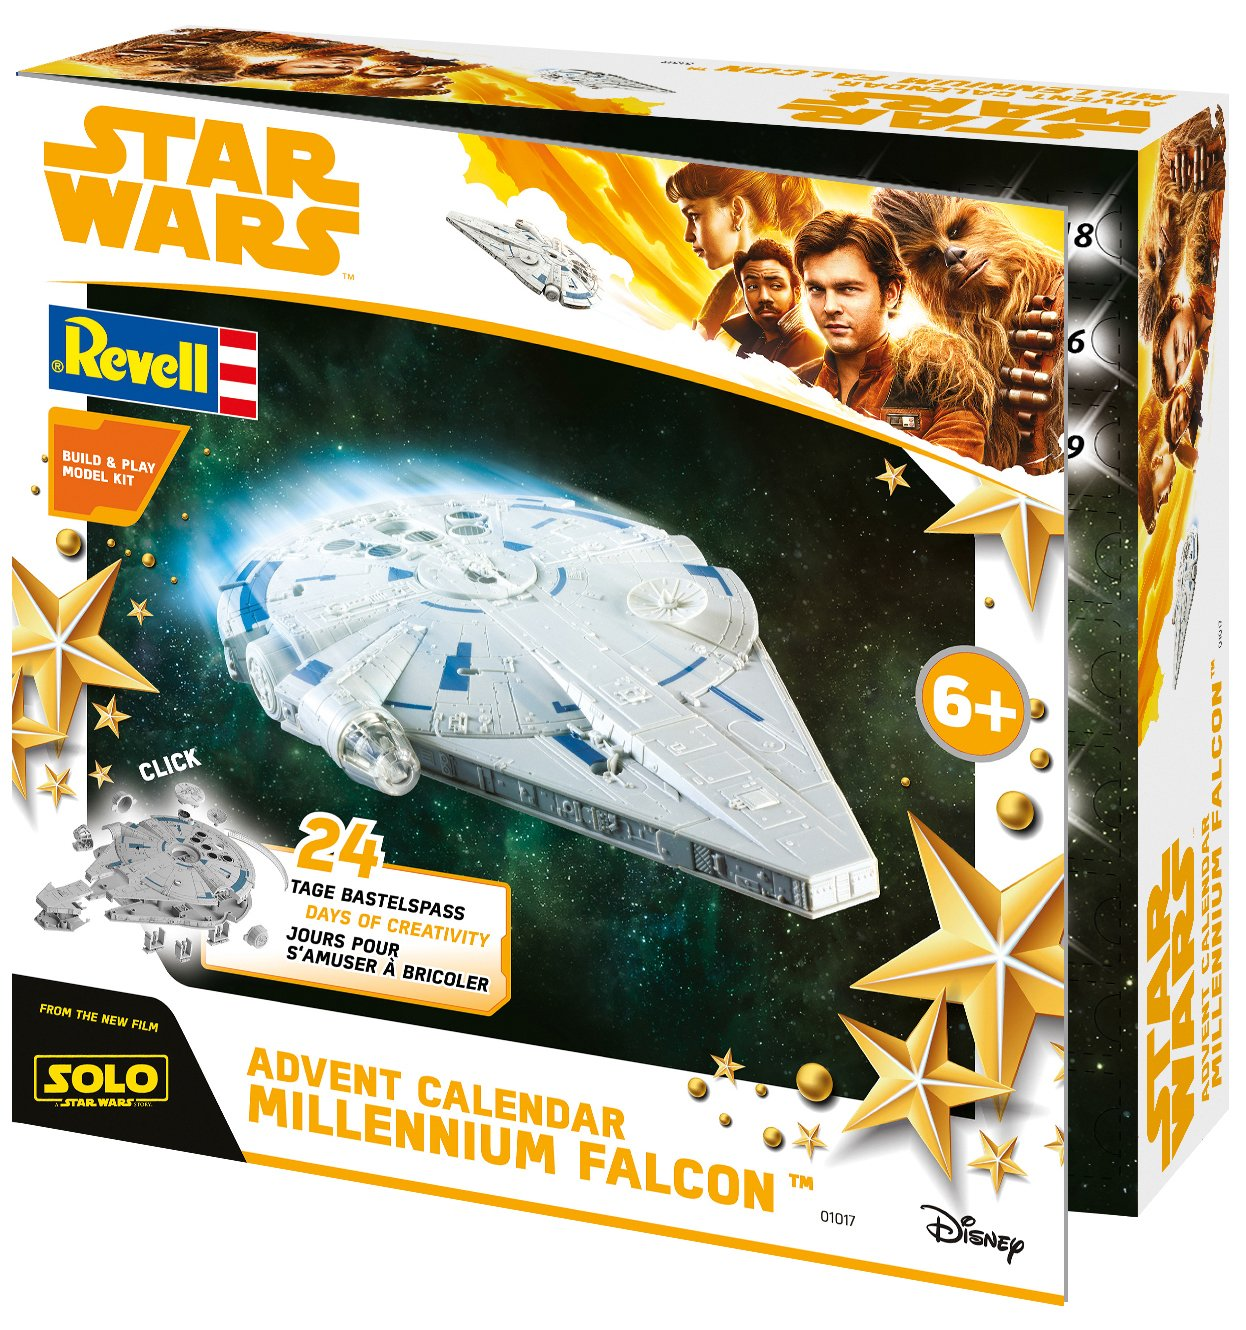 Revell Build& Play 01017 - Adventskalender Millennium Falcon, Star Wars, Disney SOLO - 24 Tage cooler Bastelspaß, der Bausatz mit dem Stecksystem für Kinder ab 6 Jahre, bauen und spielen Revell_01017